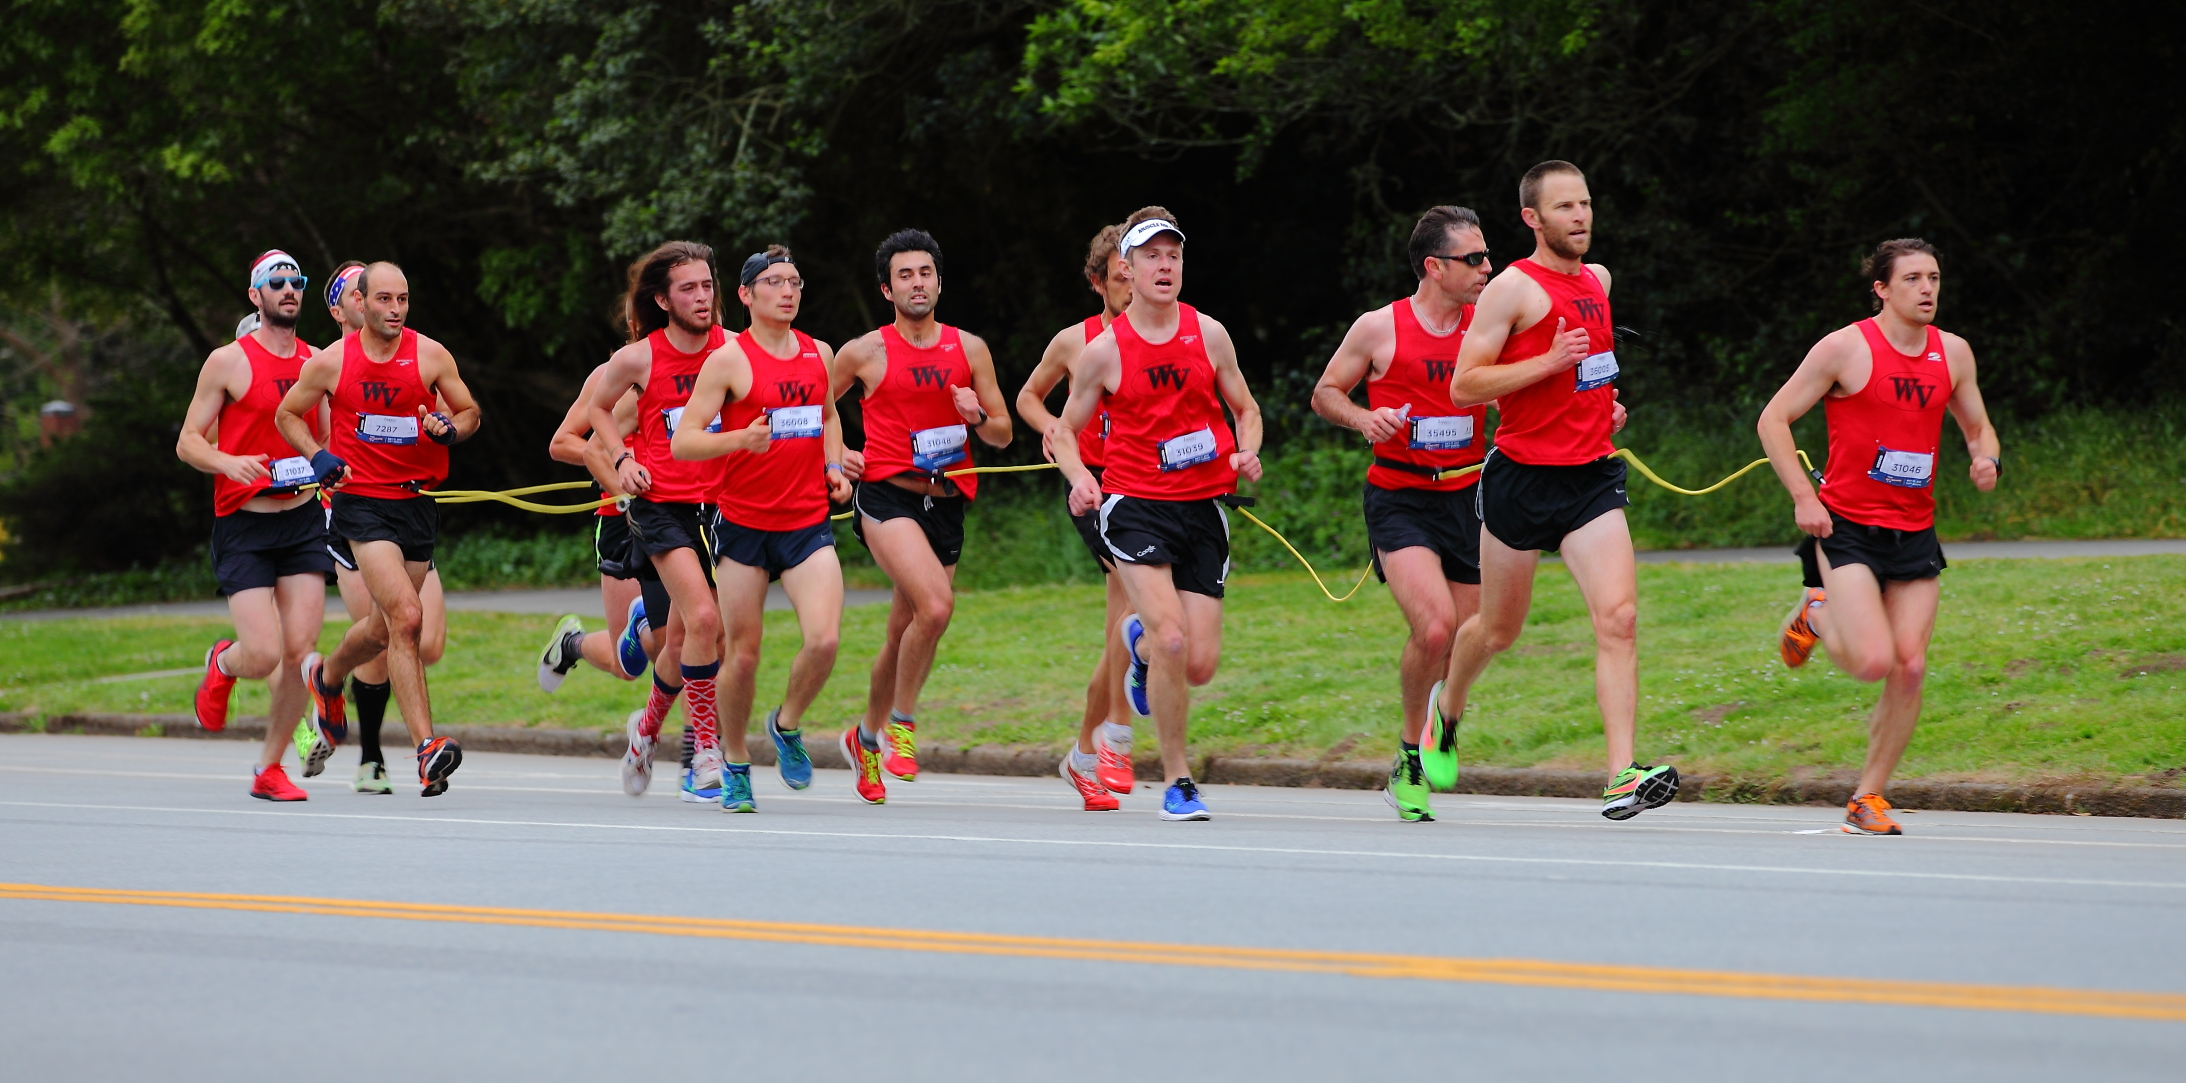 Men's Centipede Lead by The Rookie